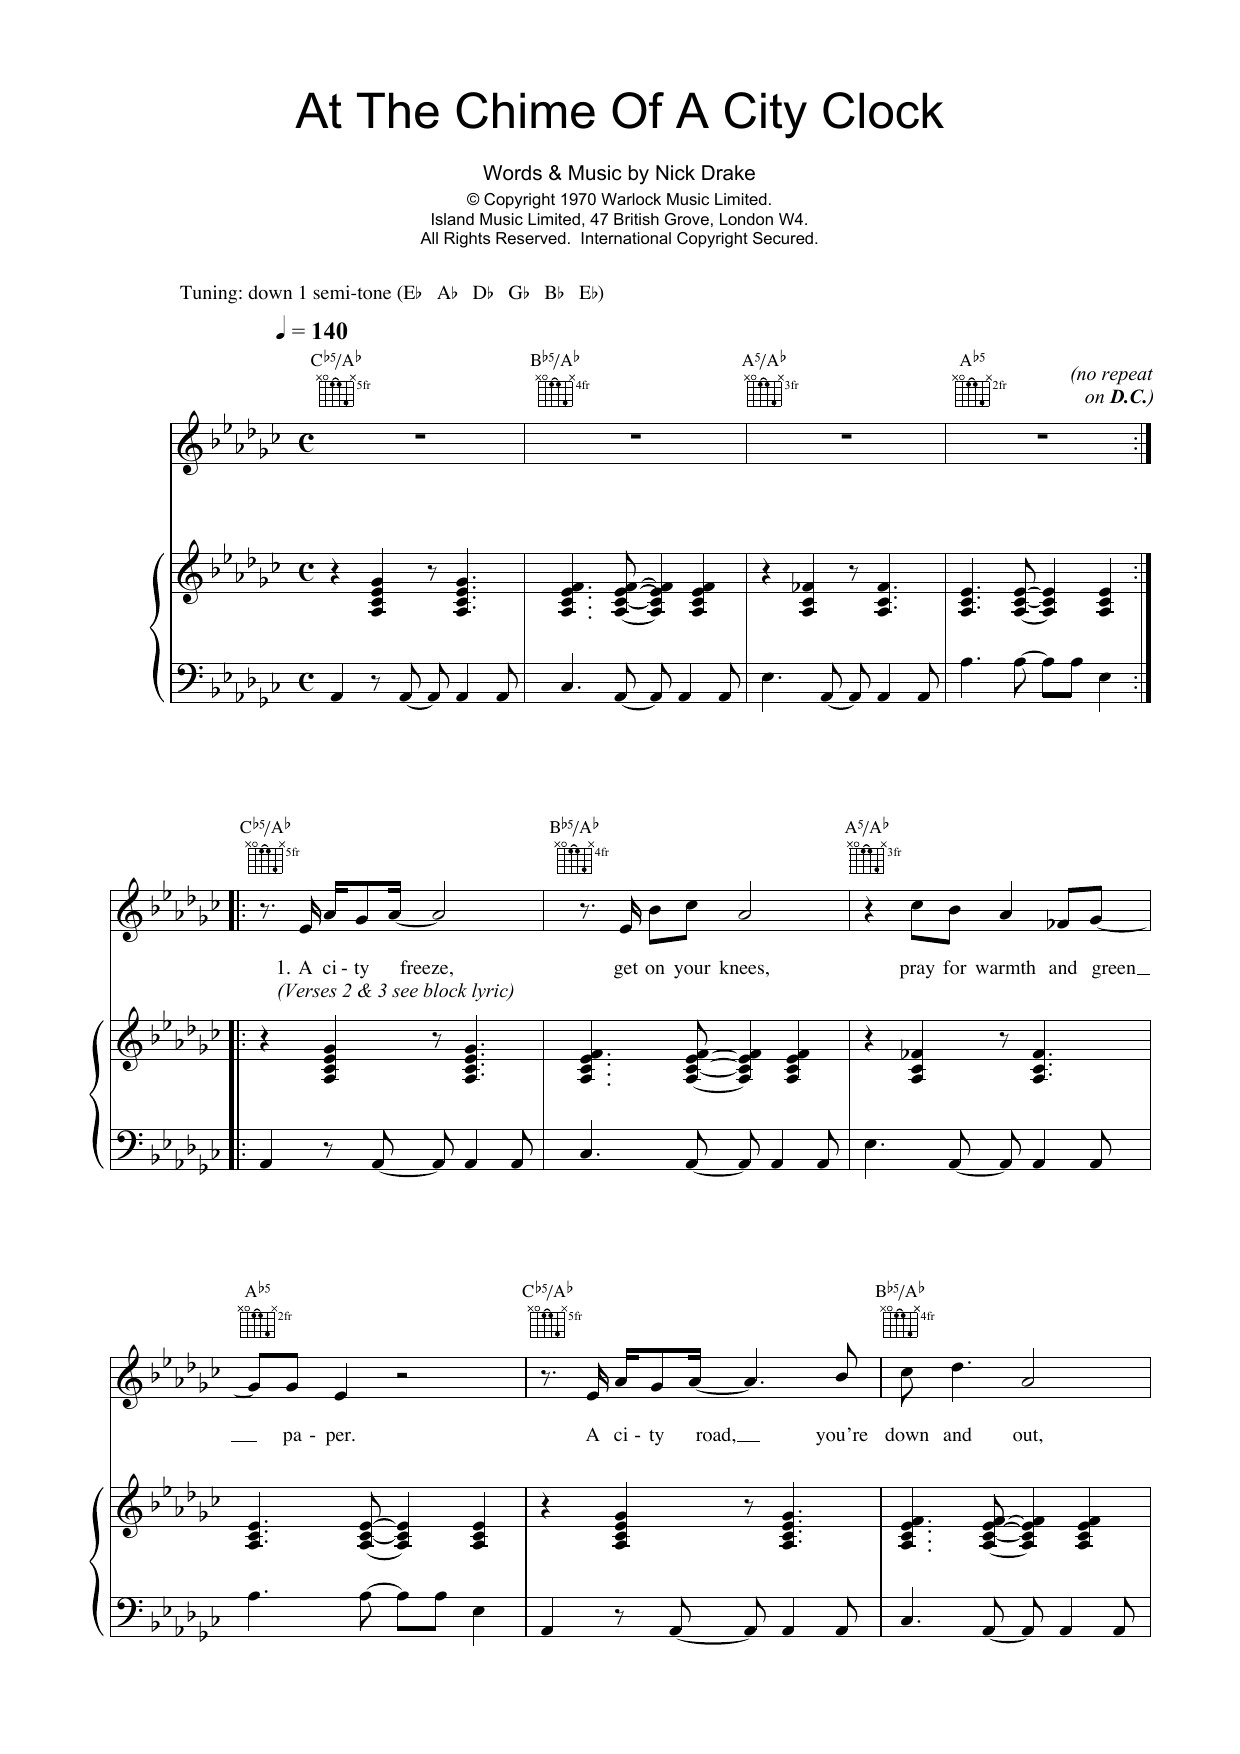 At The Chime Of A City Clock Sheet Music